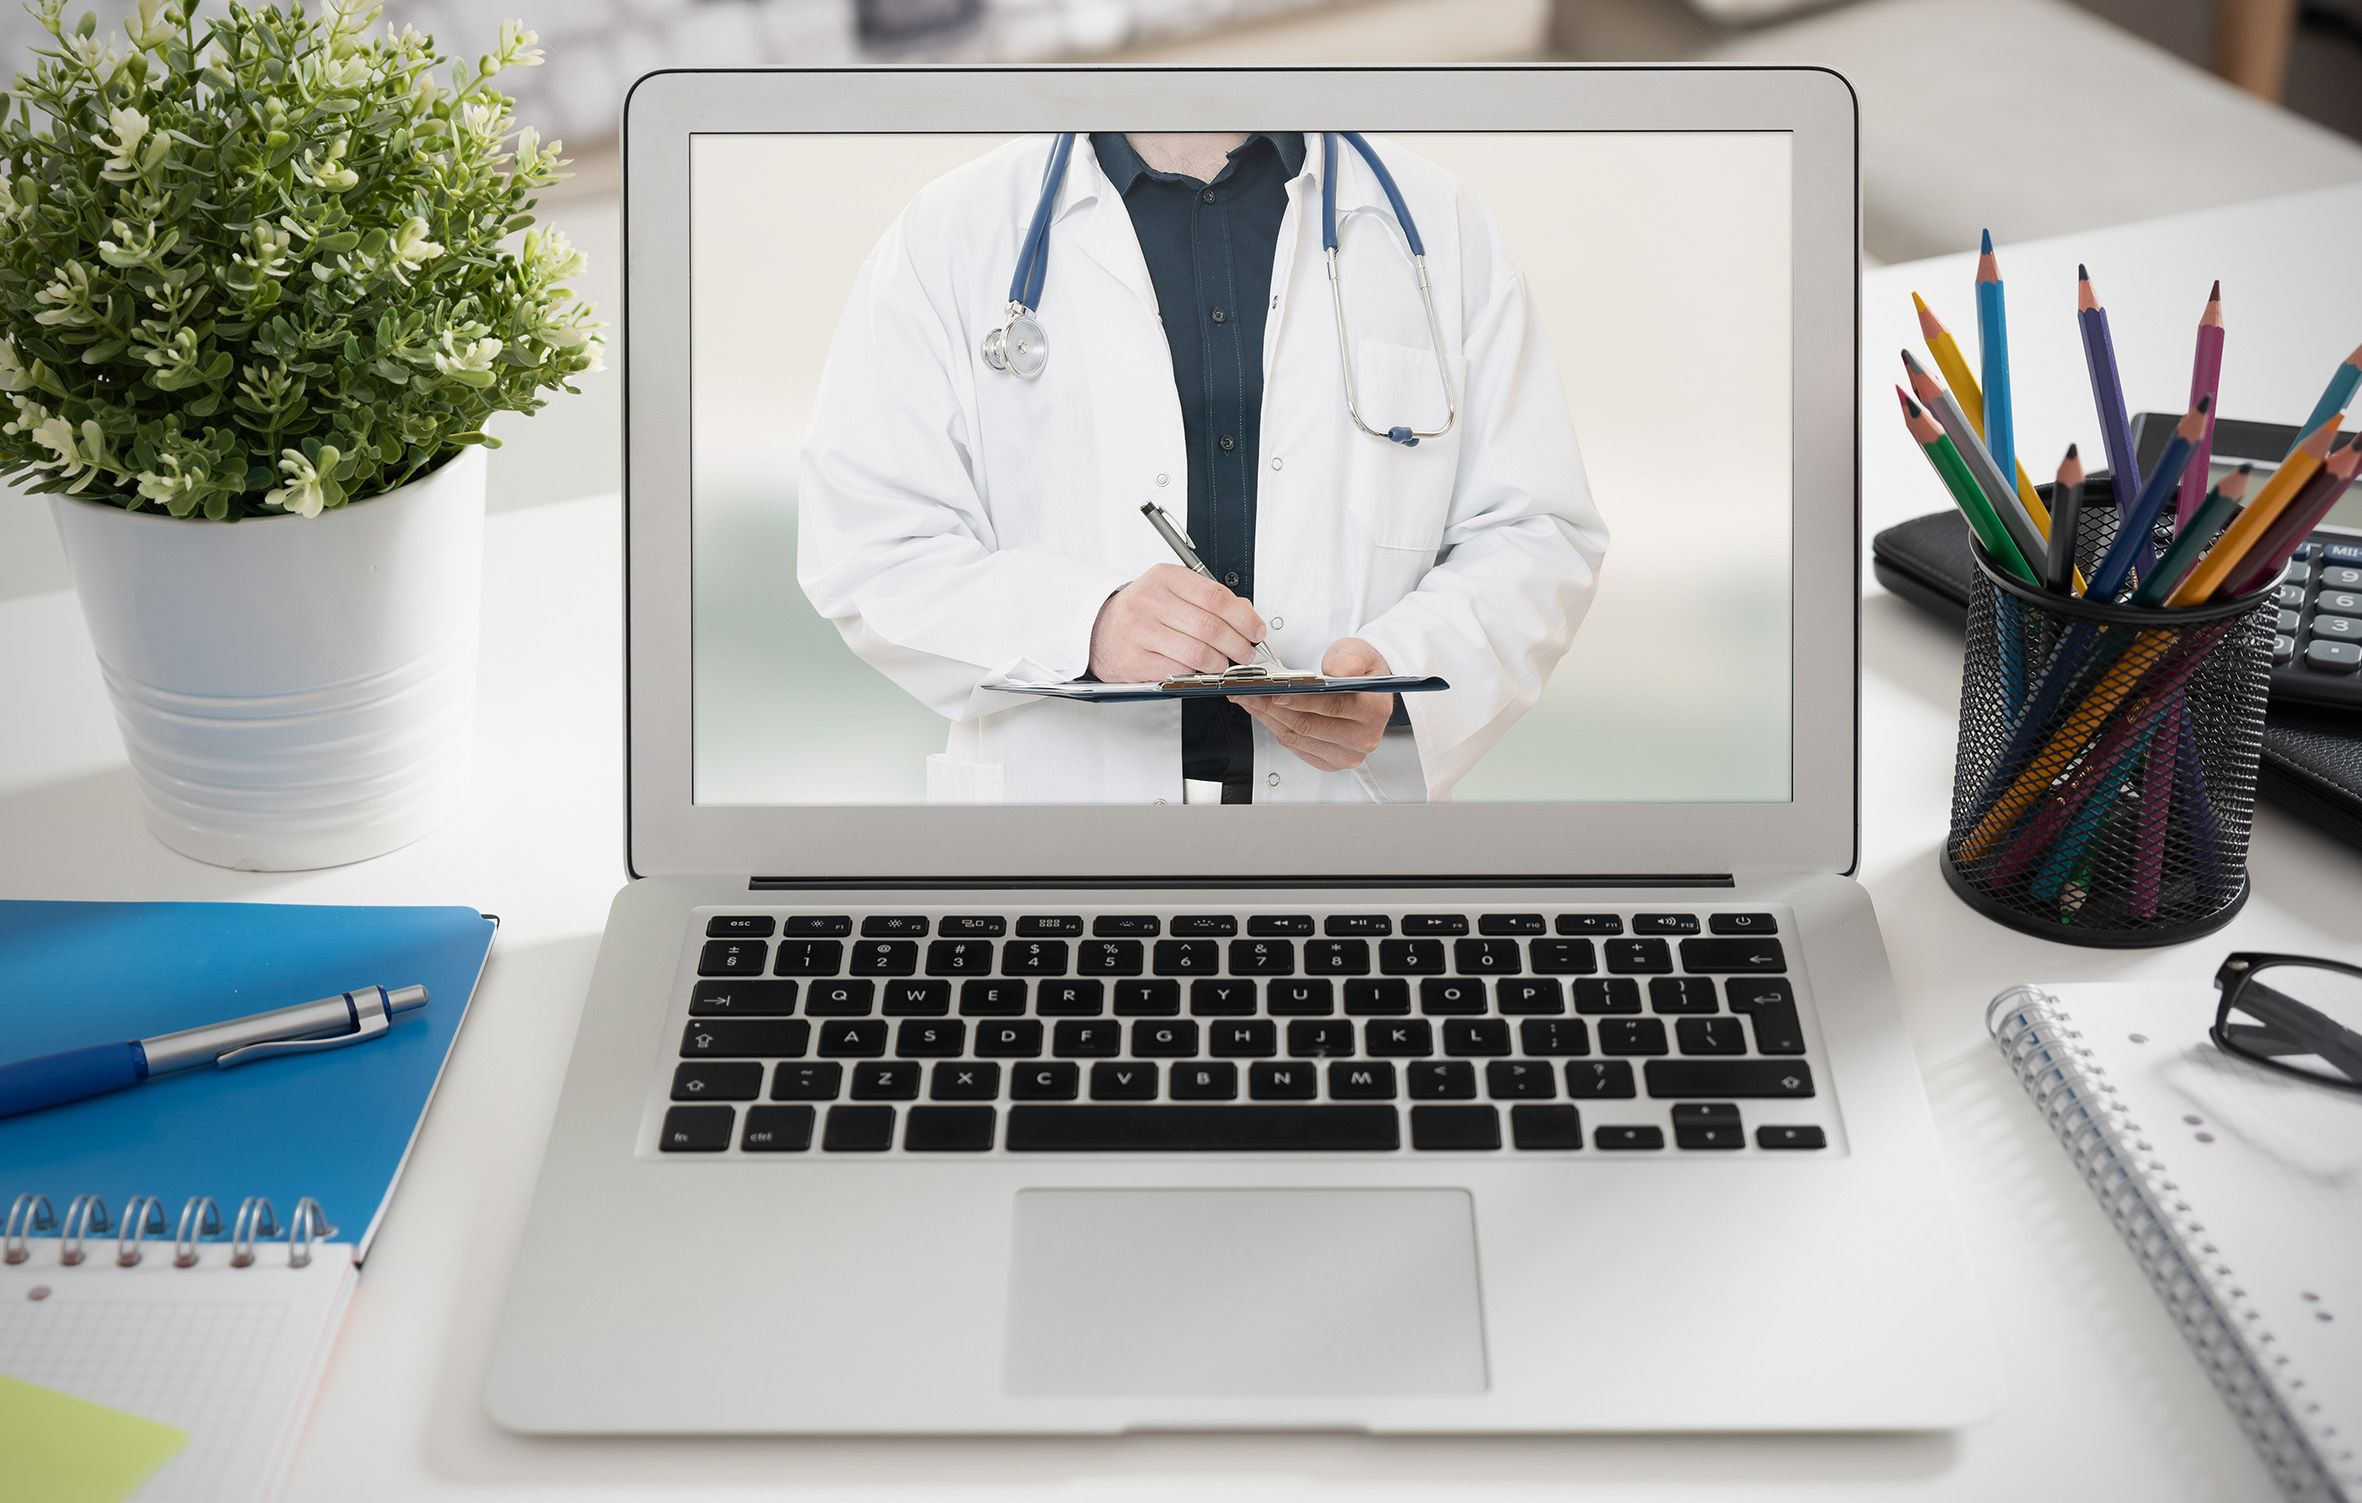 What are some of the possible advantages of Telemedicine?